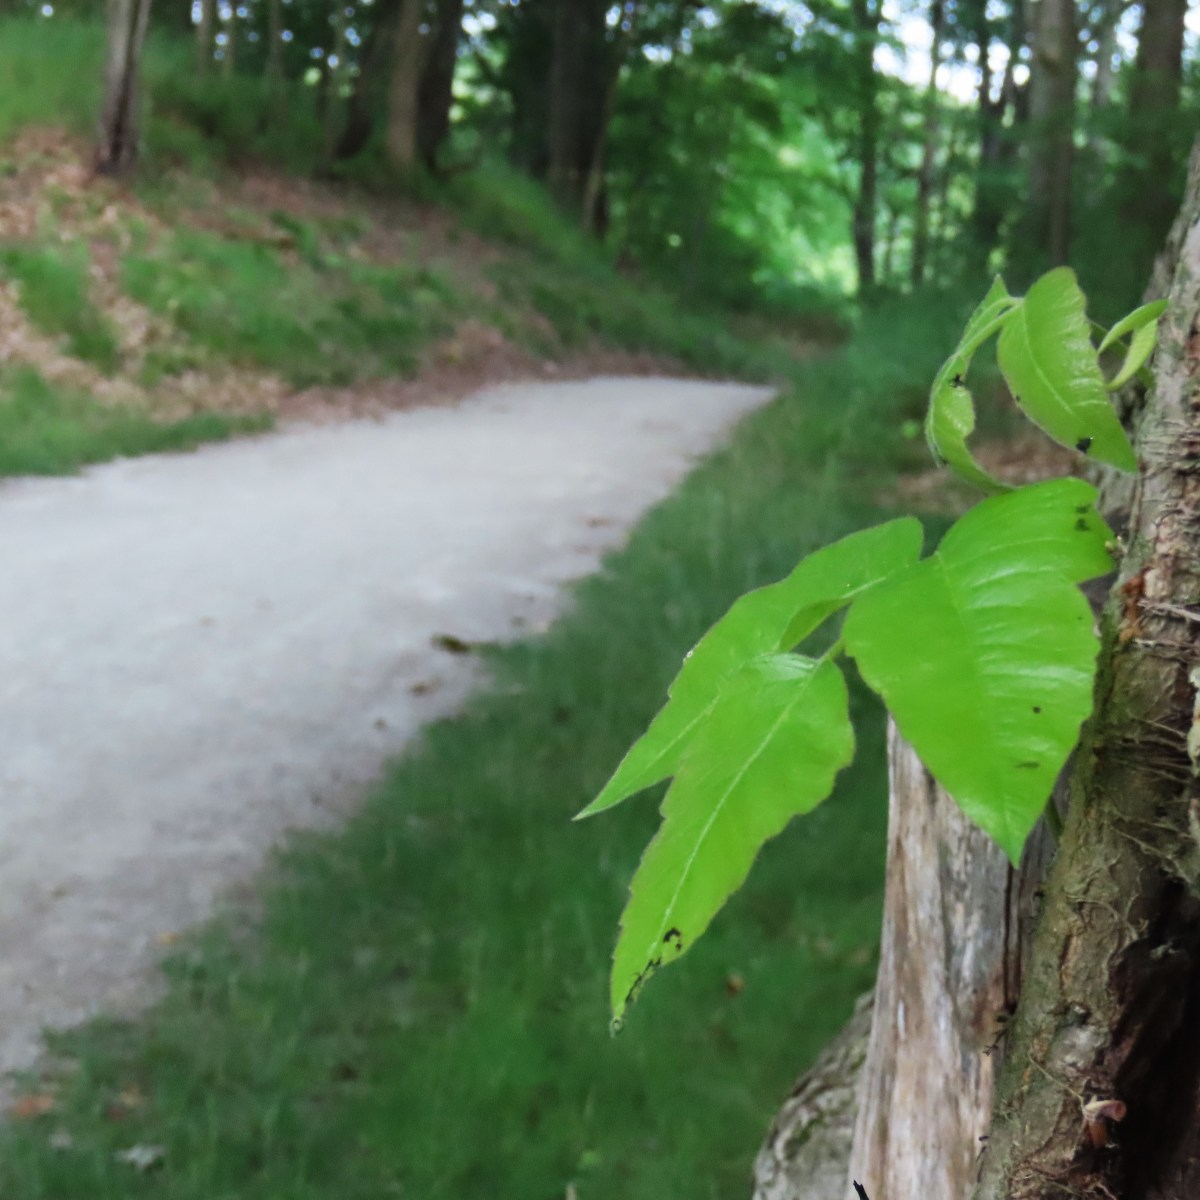 Poison ivy leaves on a tree trunk near a trail